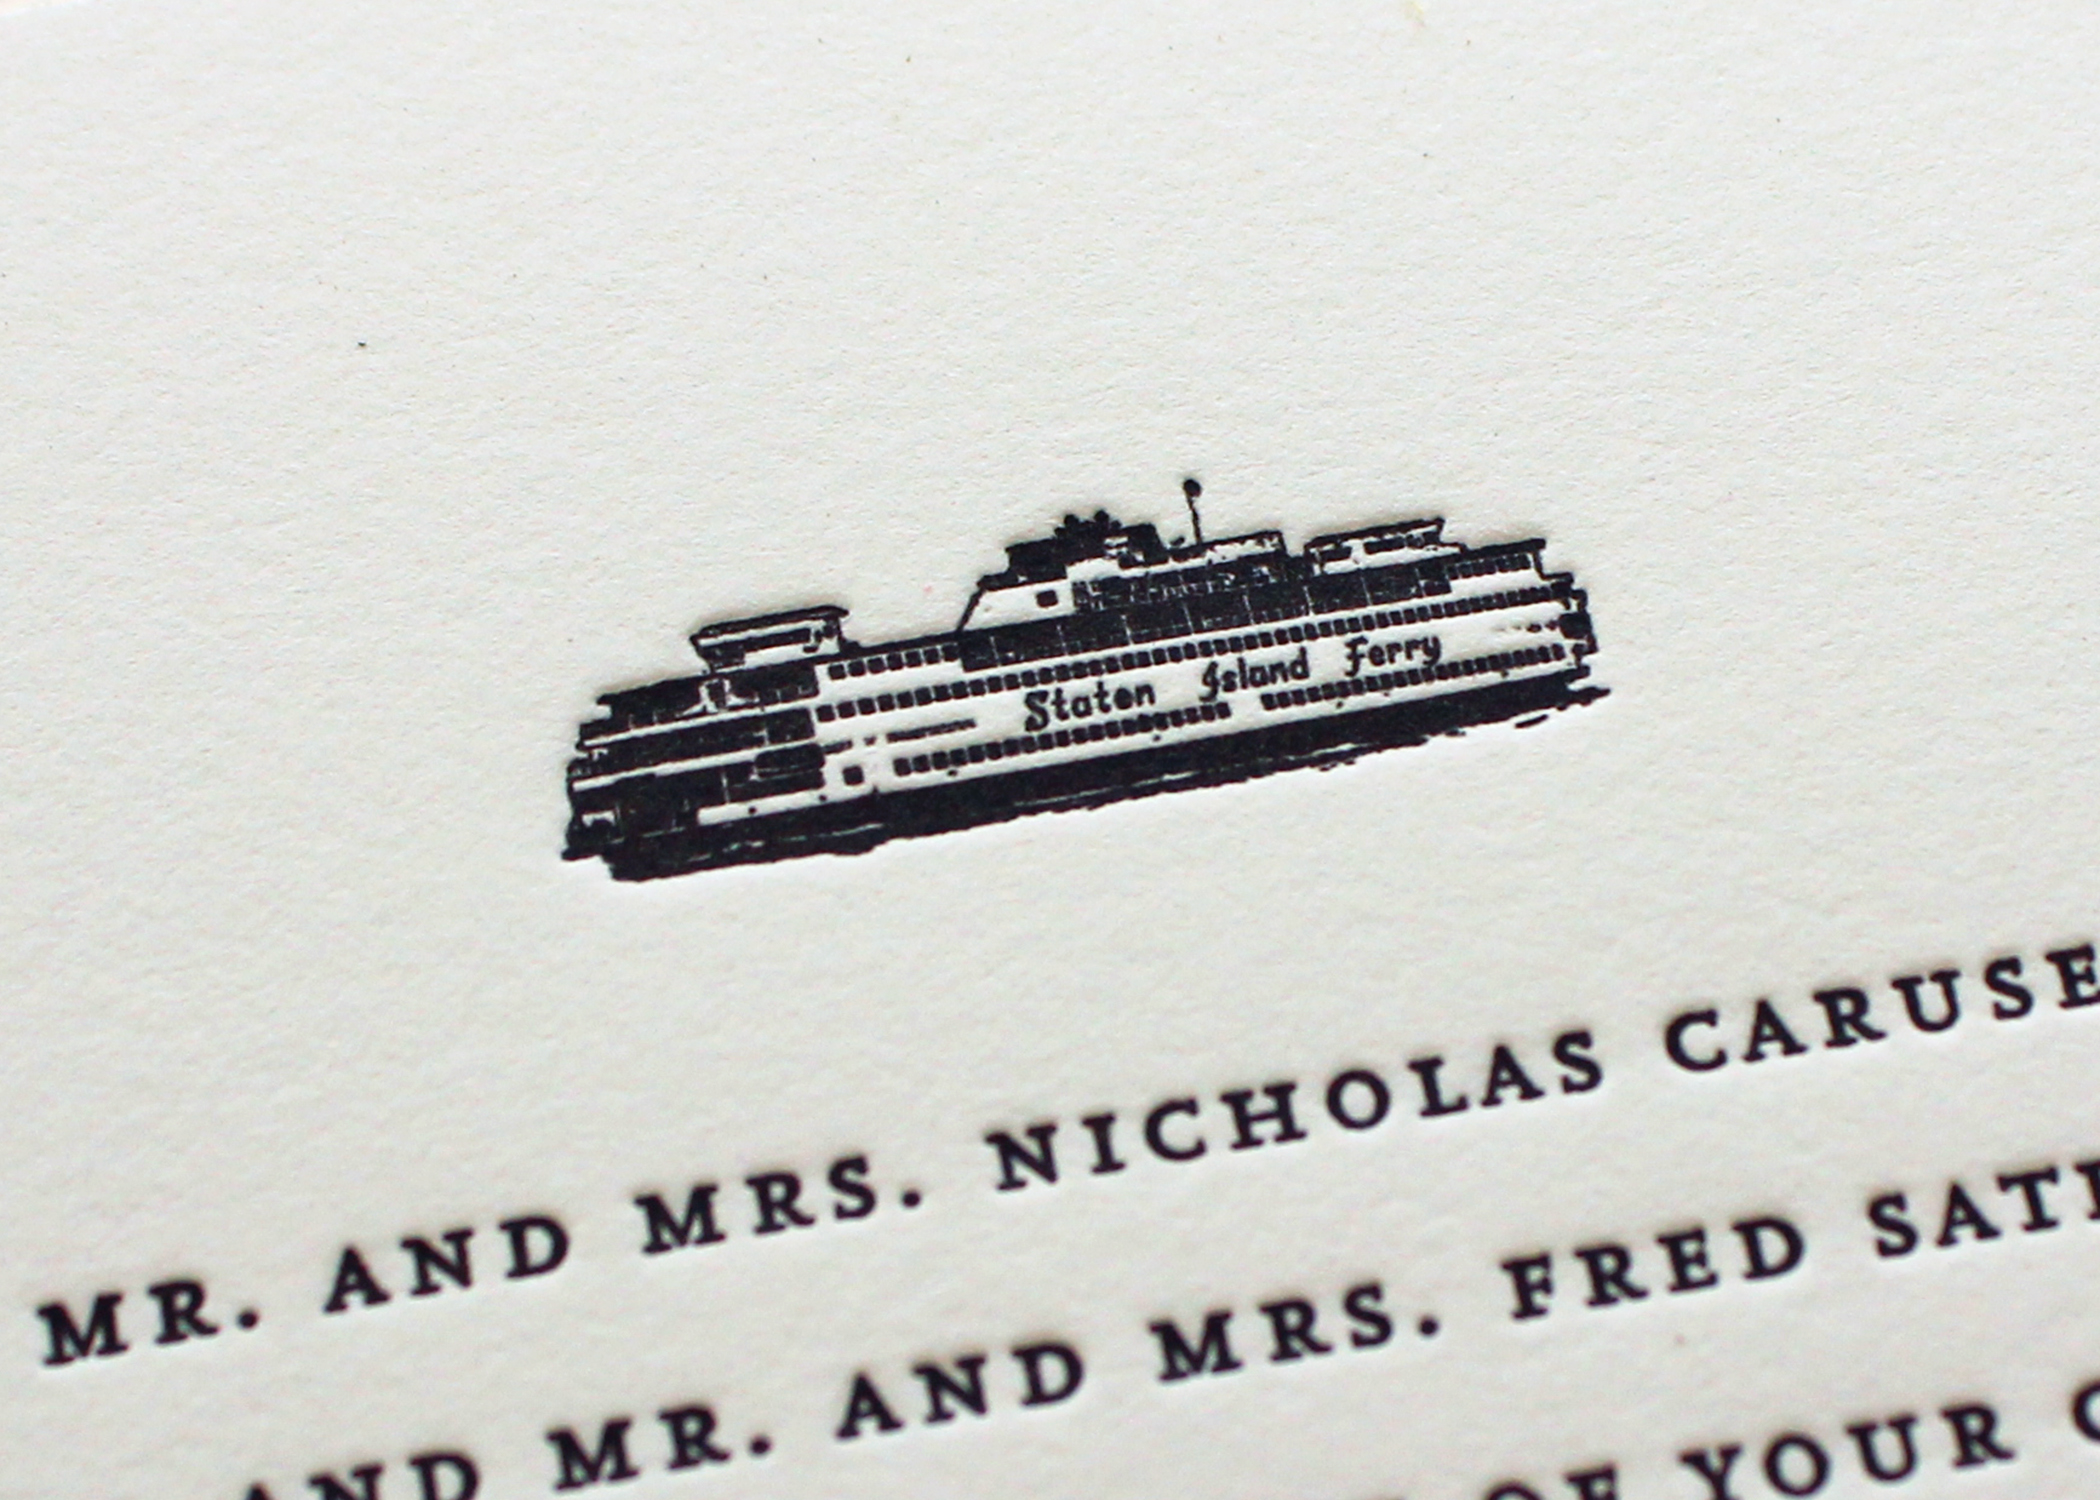 staten-island-ferry-wedding-letterpress